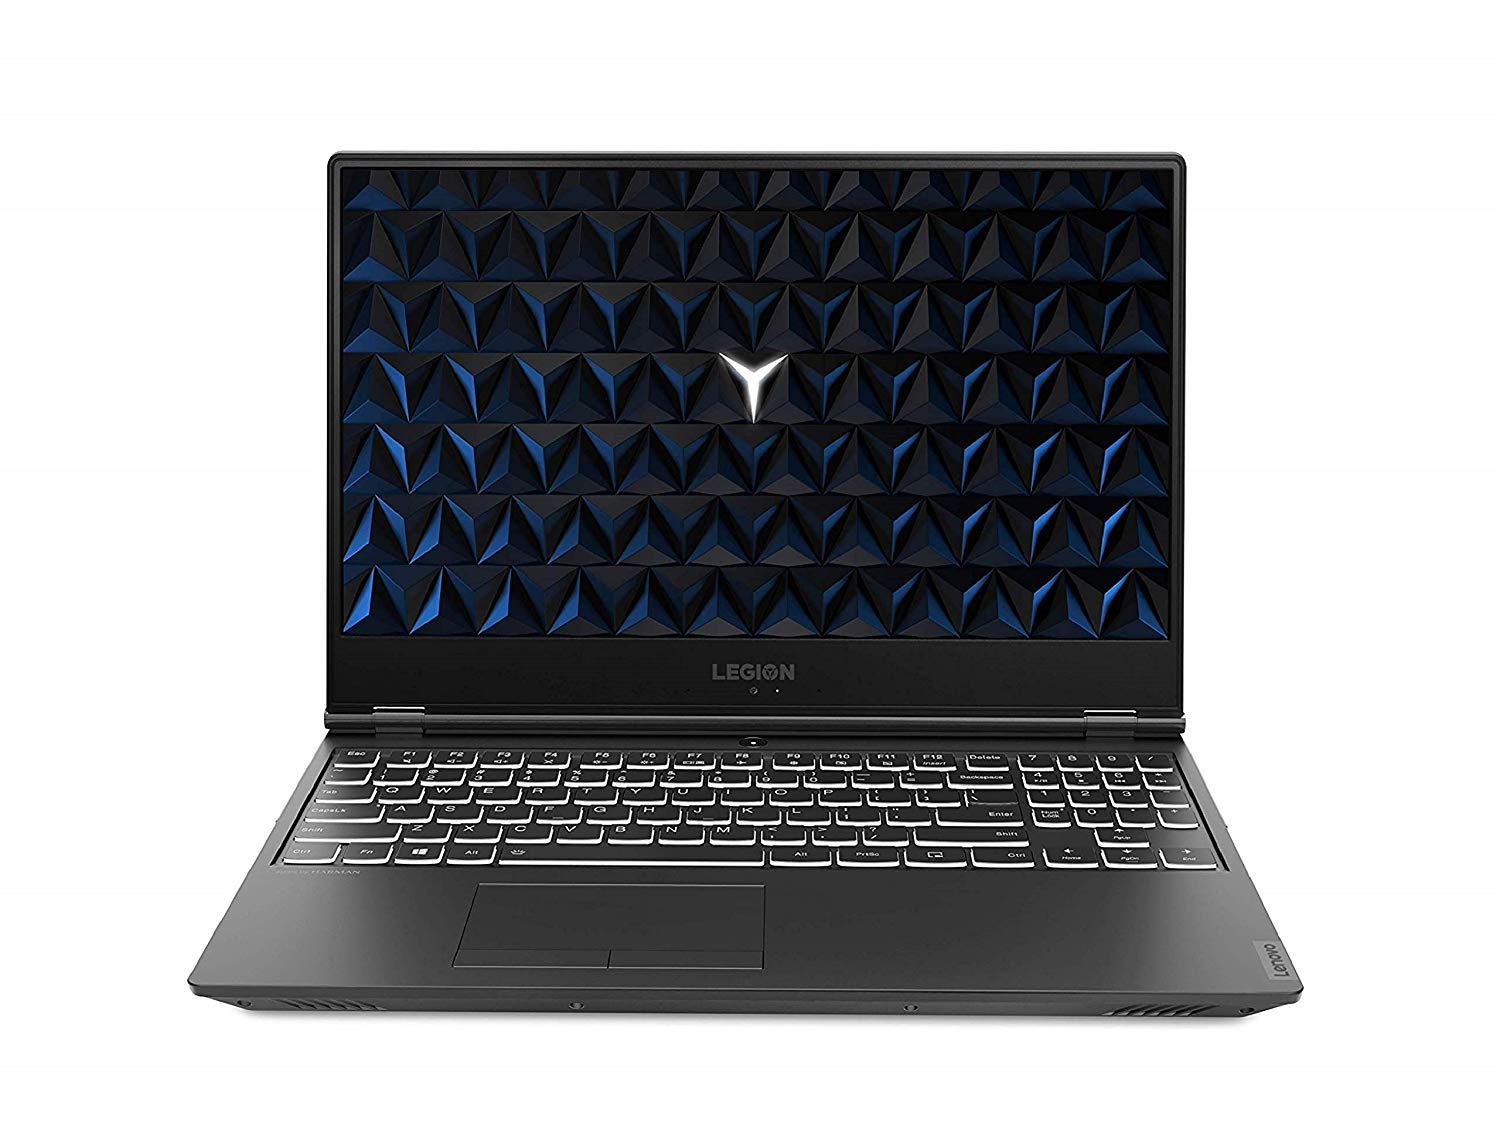 Lenovo Legion Y540 9th Gen Gaming Laptop